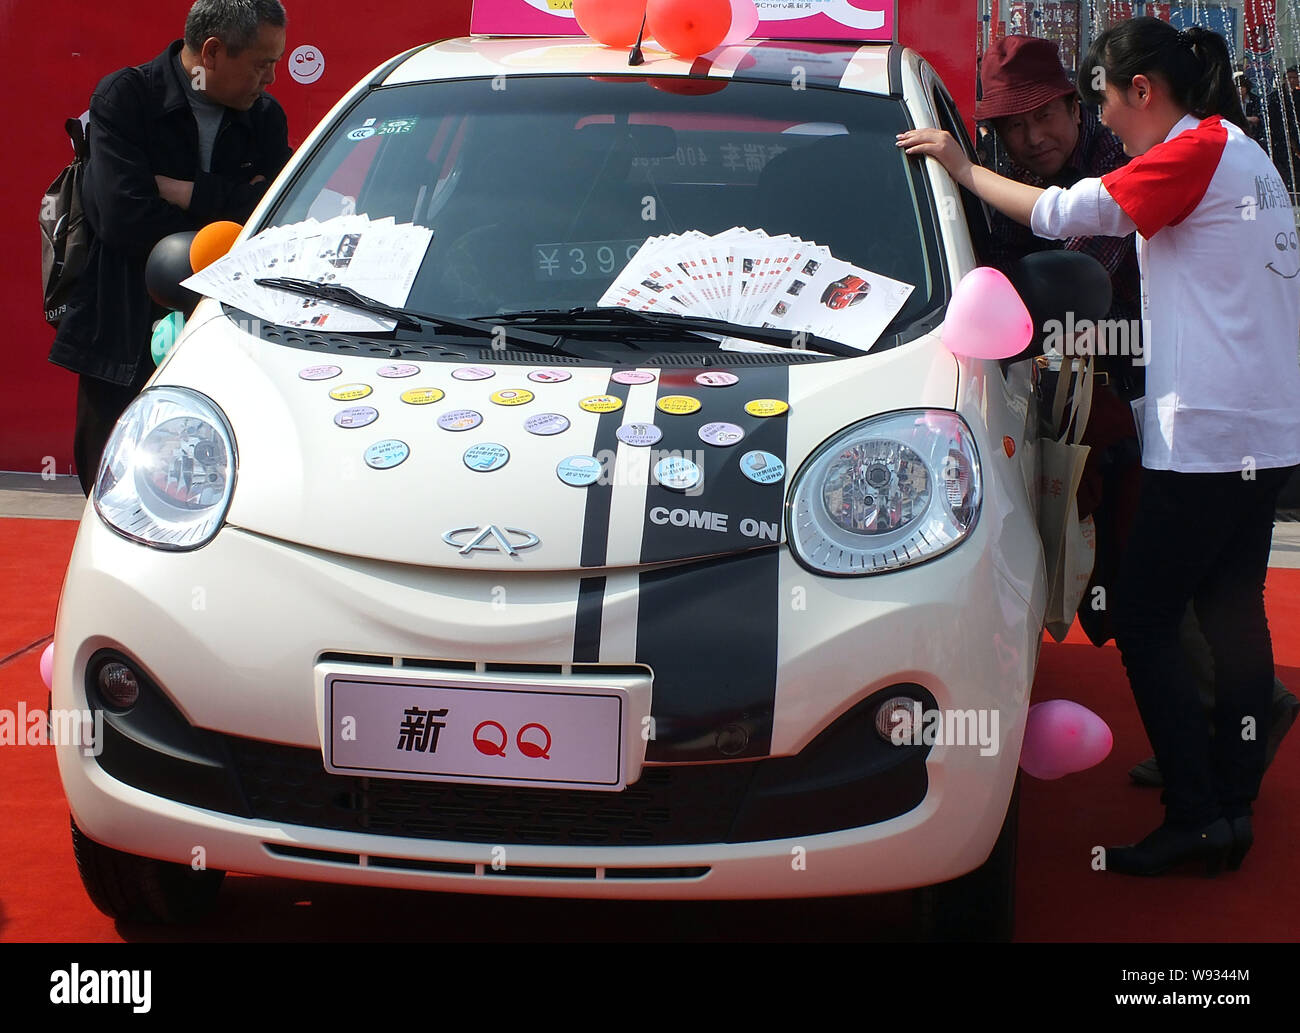 File Visitors View A Chery Qq During An Auto Show In Yichang City Central Chinas Hubei Province 13 April 2013 In The Latest Sign Of Increased Stock Photo Alamy